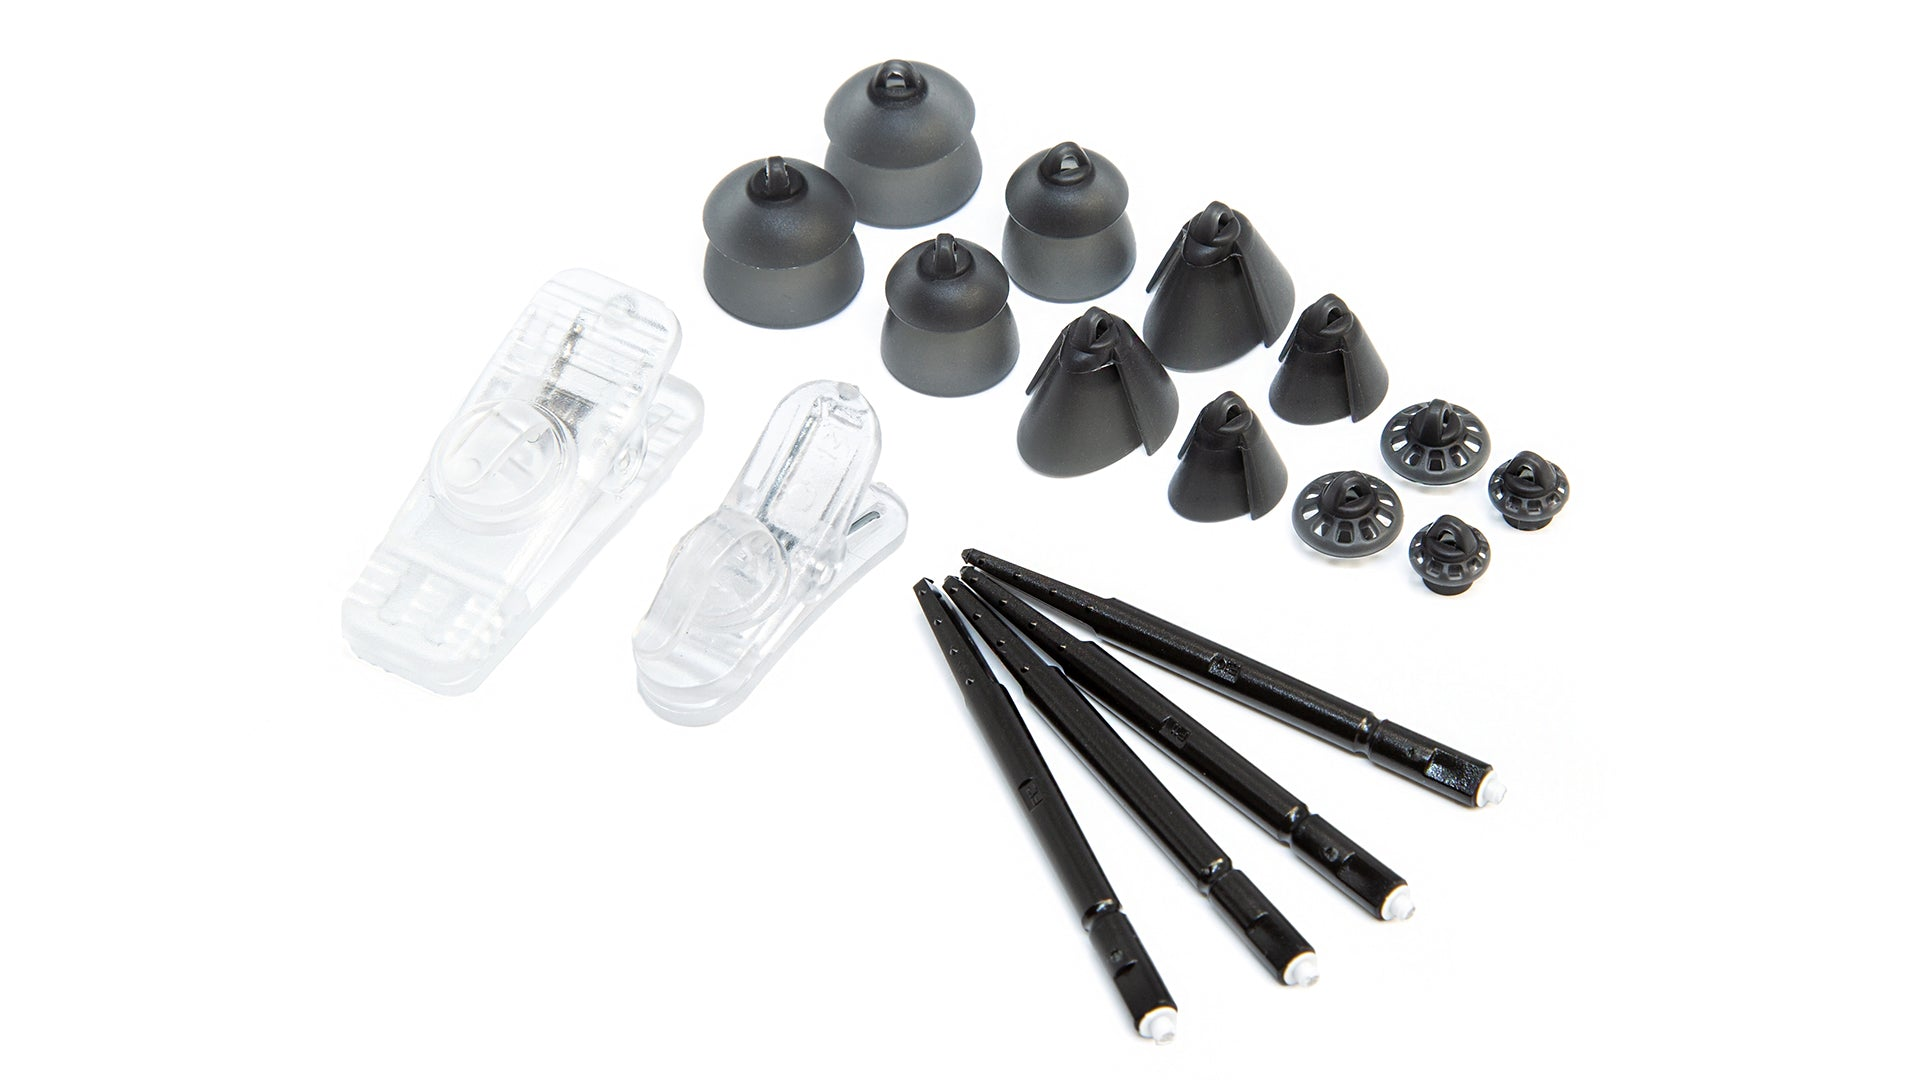 Sidekick Spares Kit